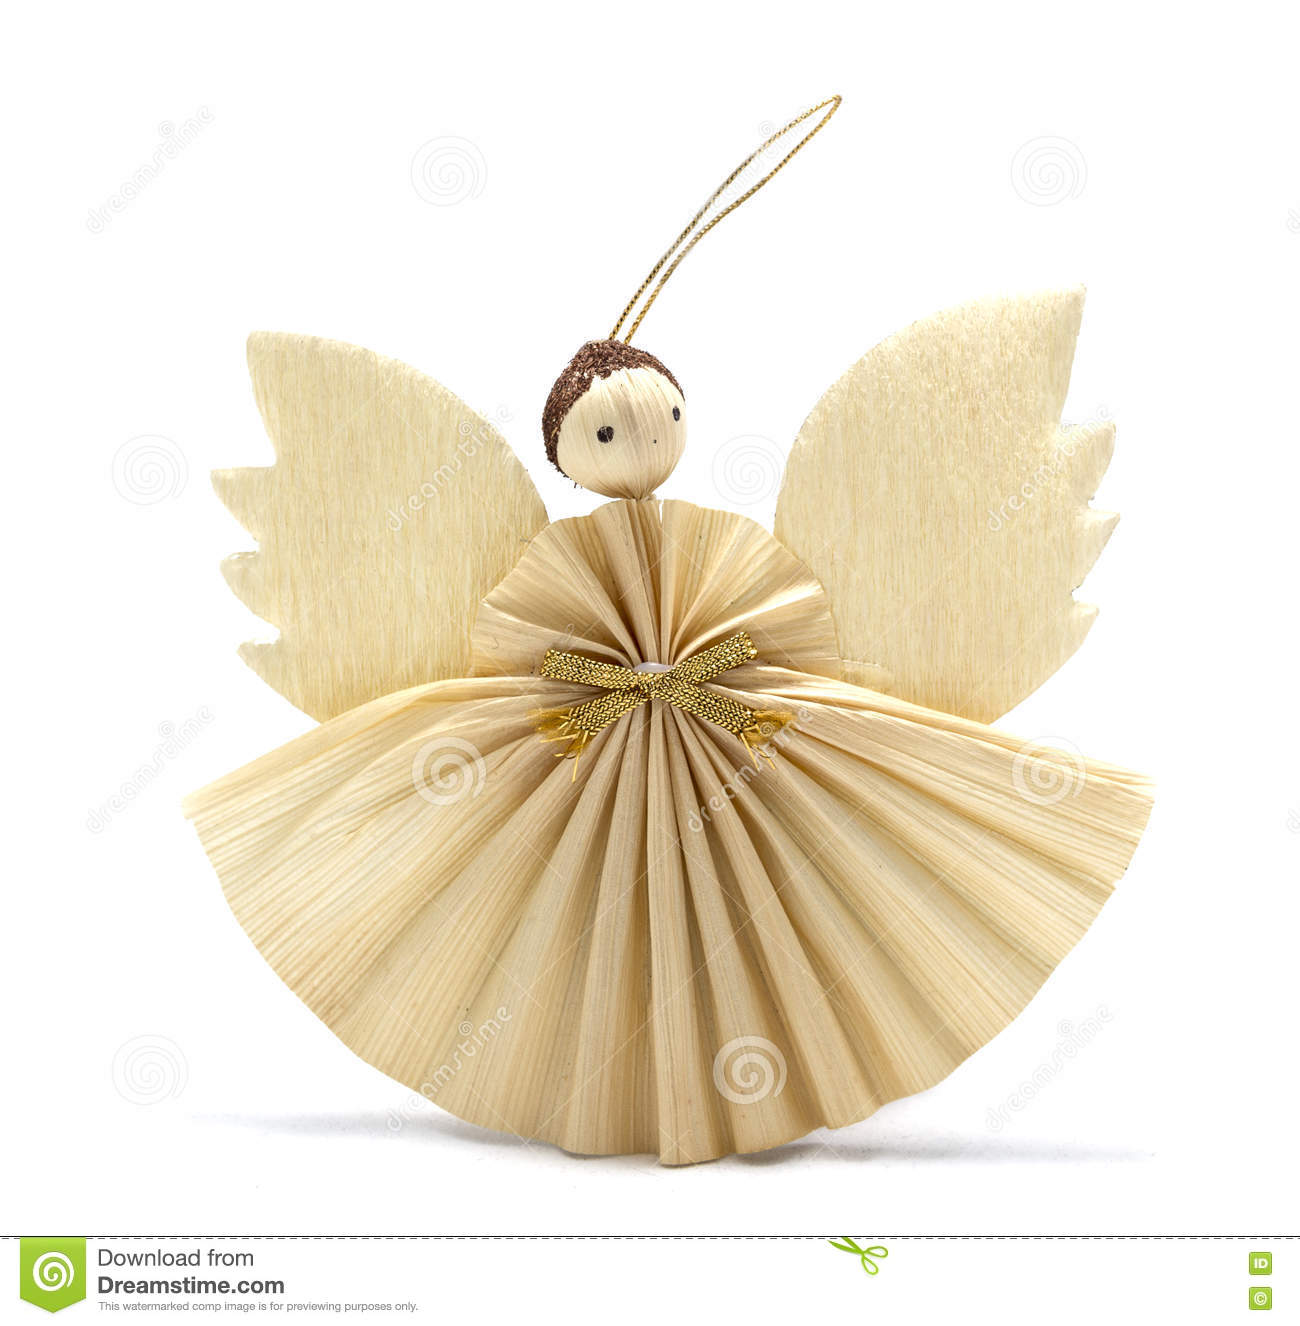 Corn Husk Angel Stock Photo.